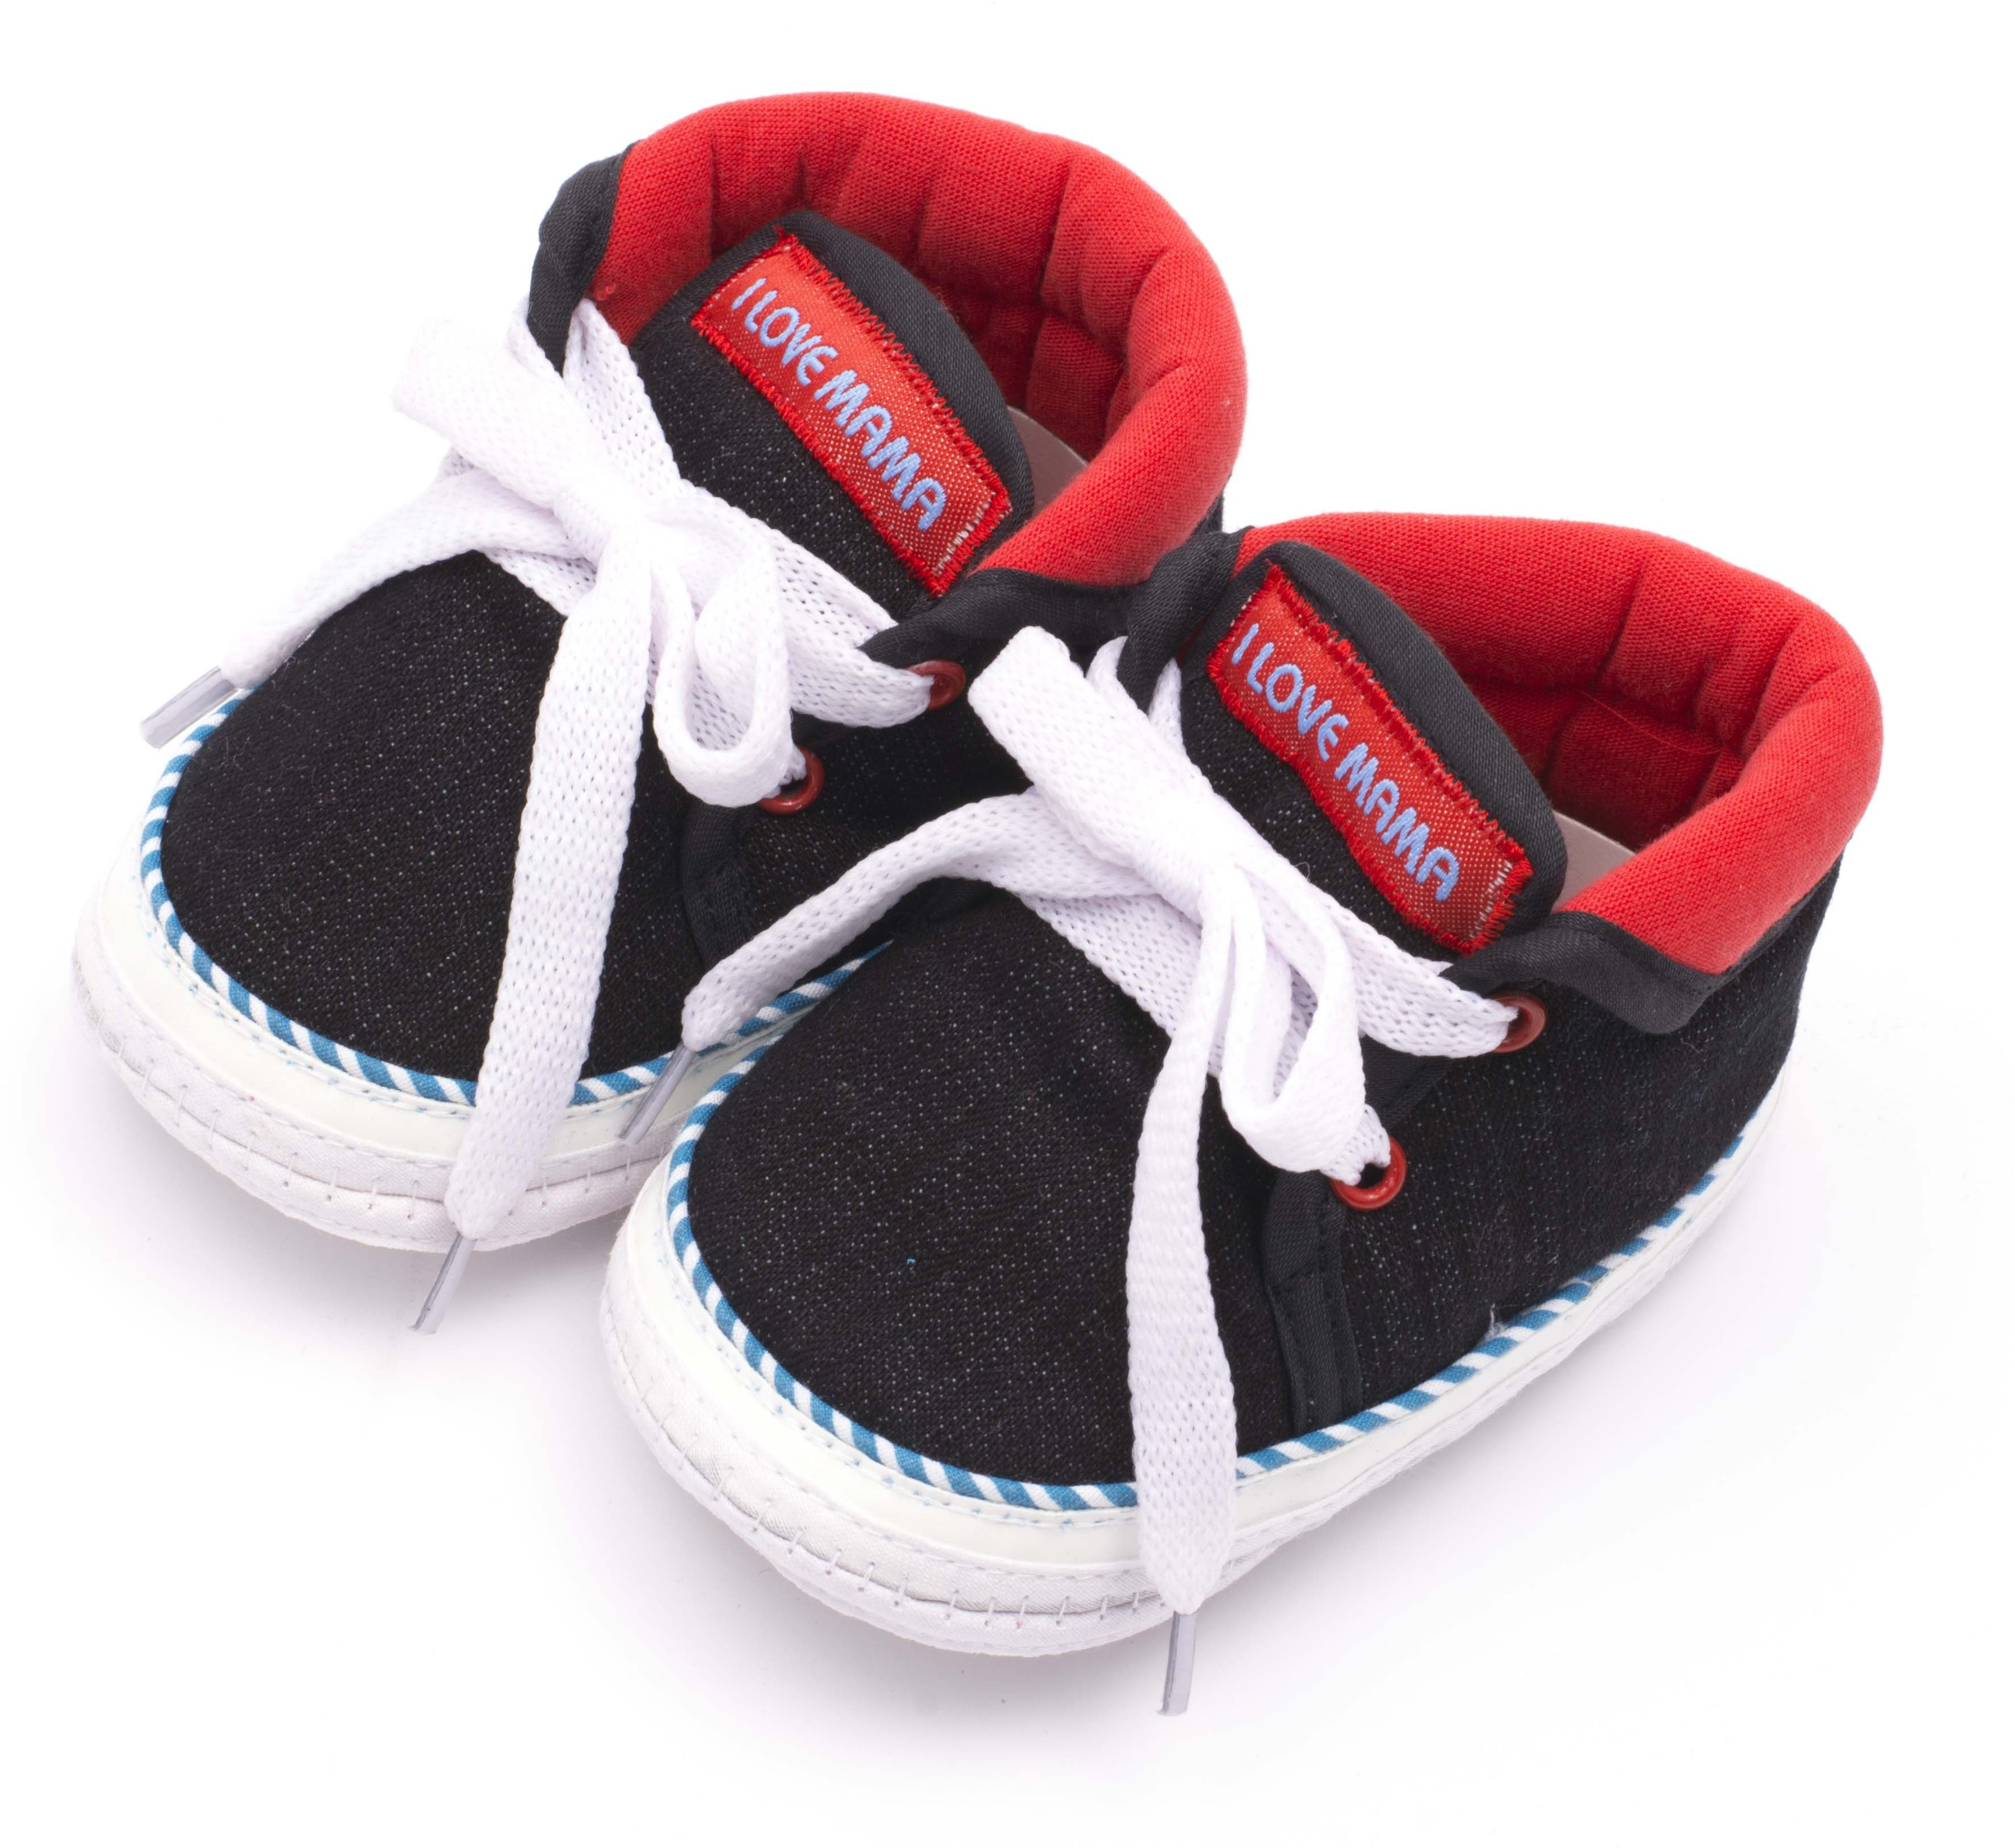 Infano Boys & Girls Black Sneakers(Pack of 1)